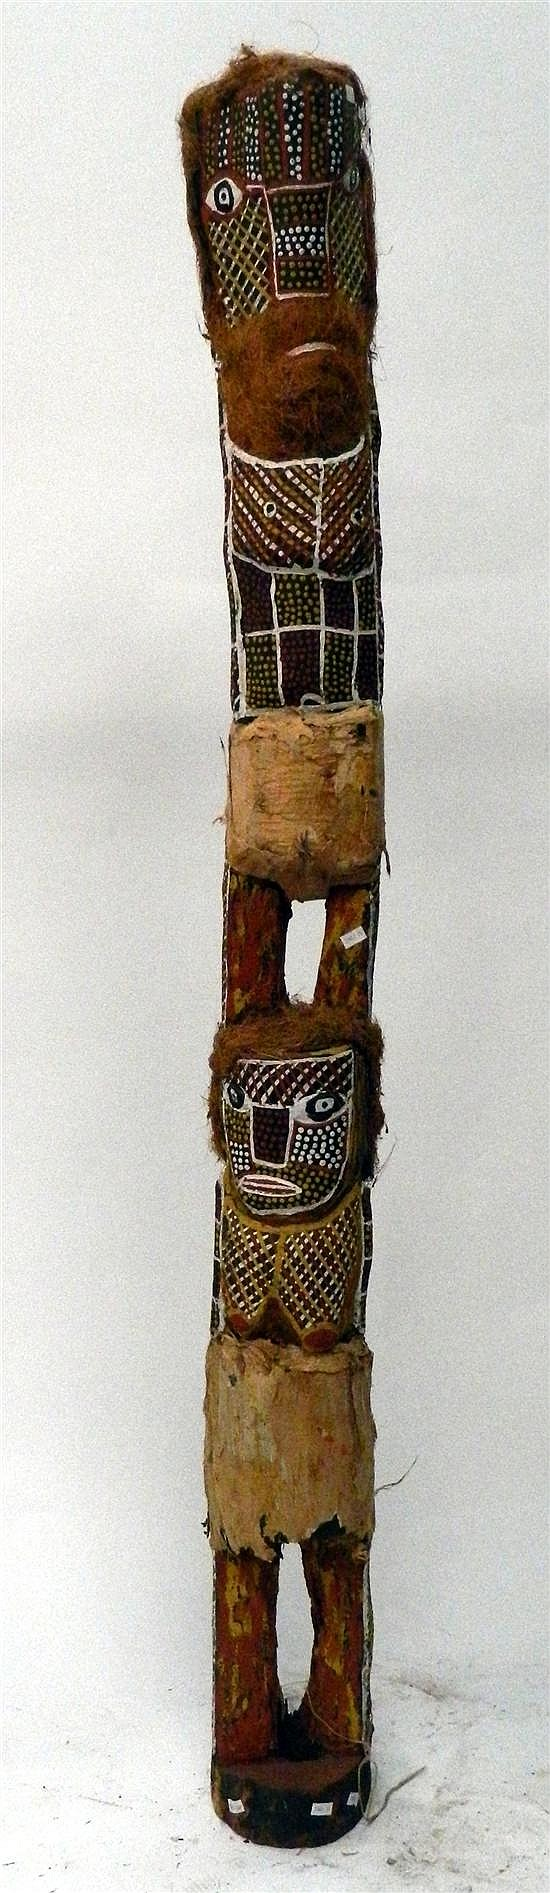 Tiwi Islands Tall Figure 1999, Carmelina Puantulura Circa 1957 - 2006